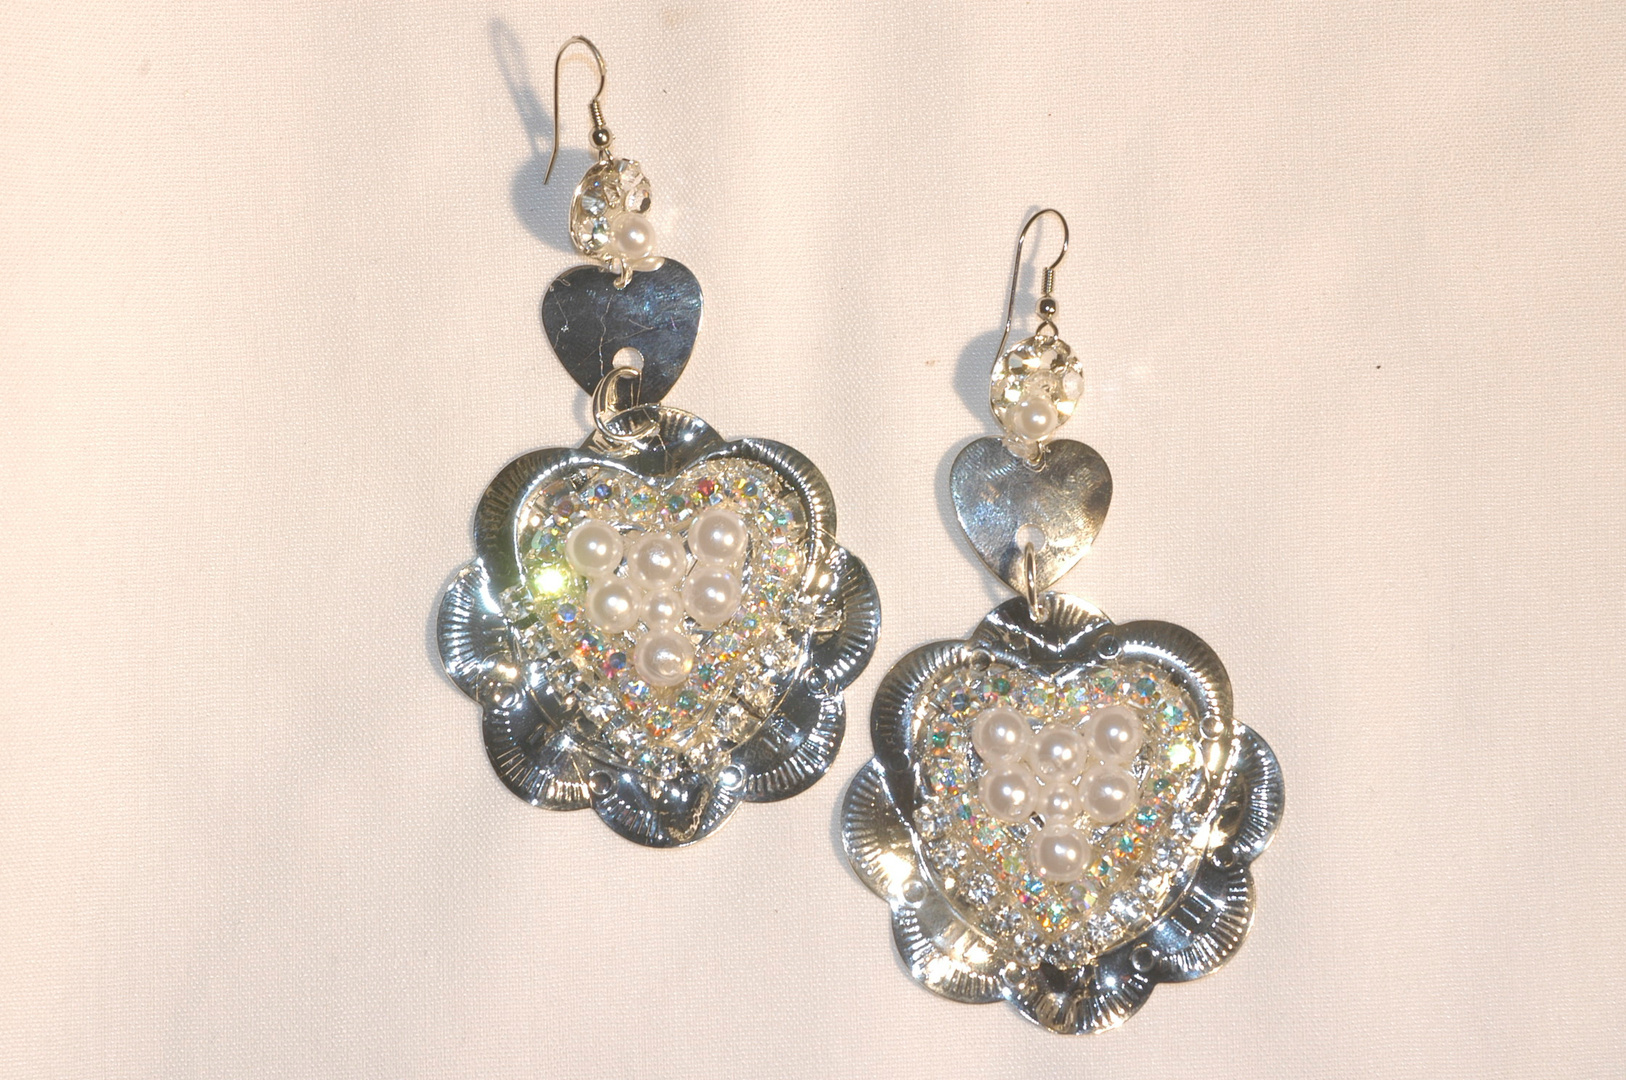 THIS STYLE OF SILVER AND PEARLS WERE WORN BY KIMBERLY AIKEN-MISS AMERICA.